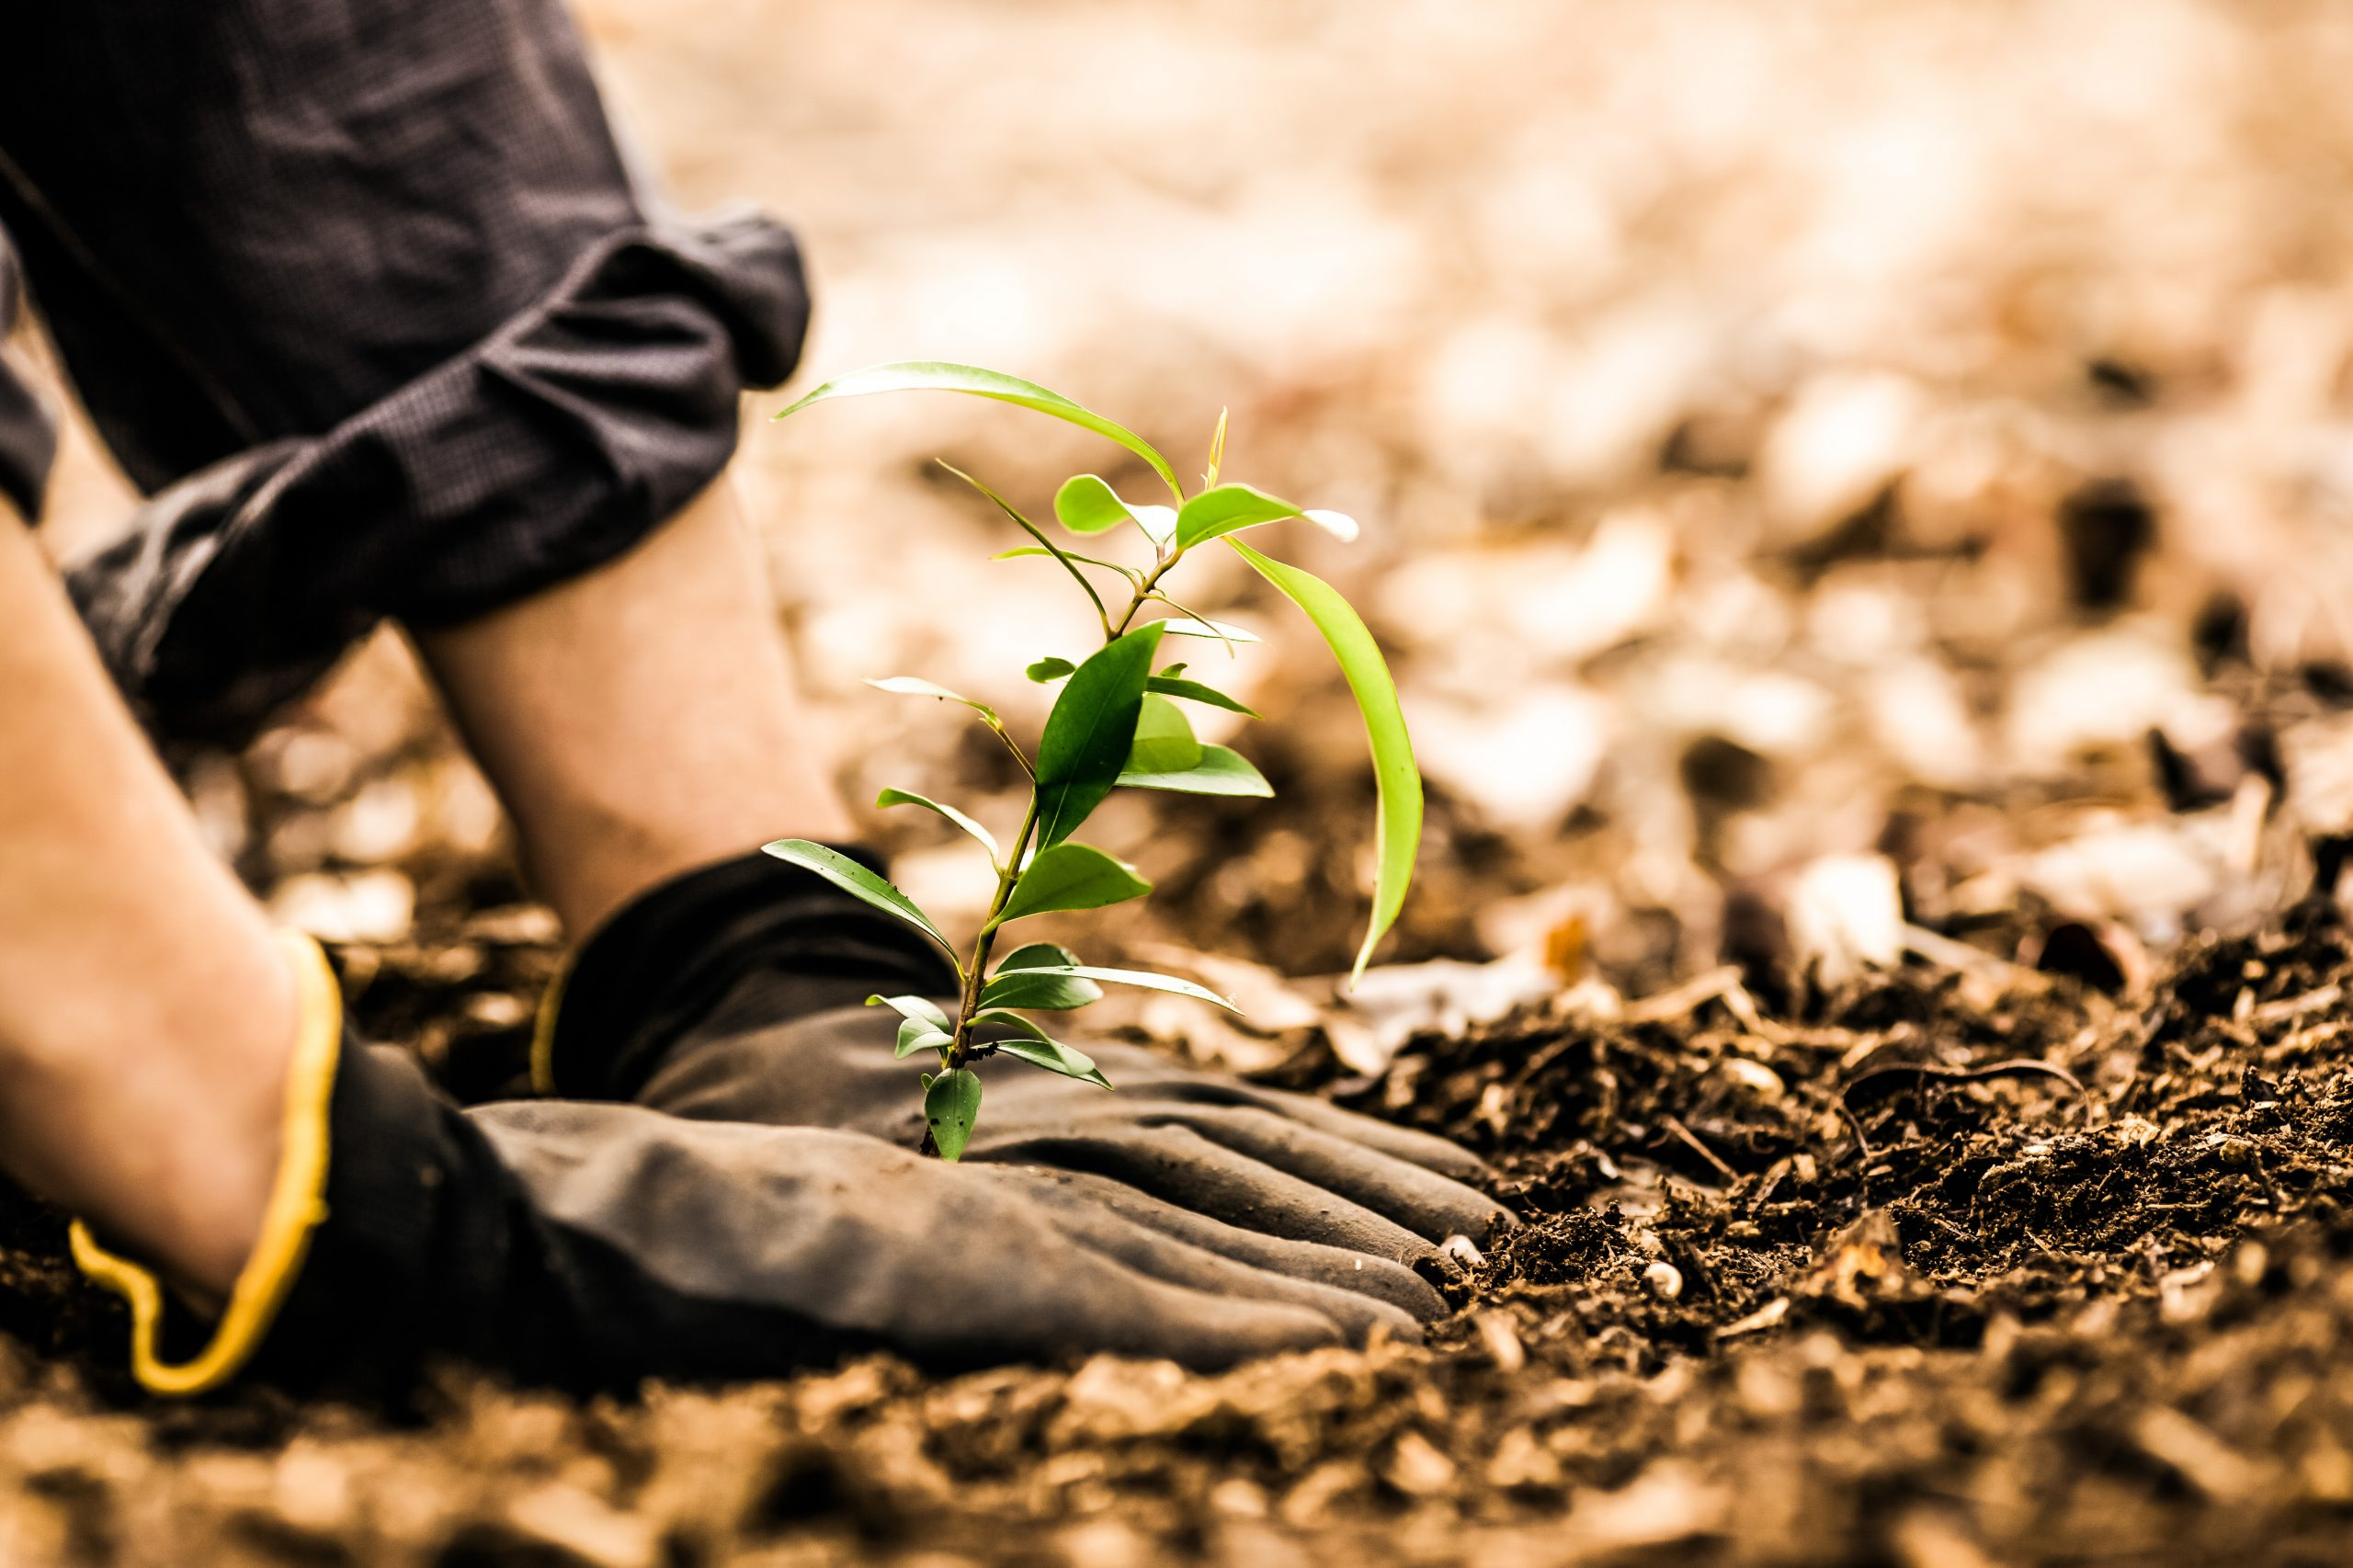 Person planting a tree